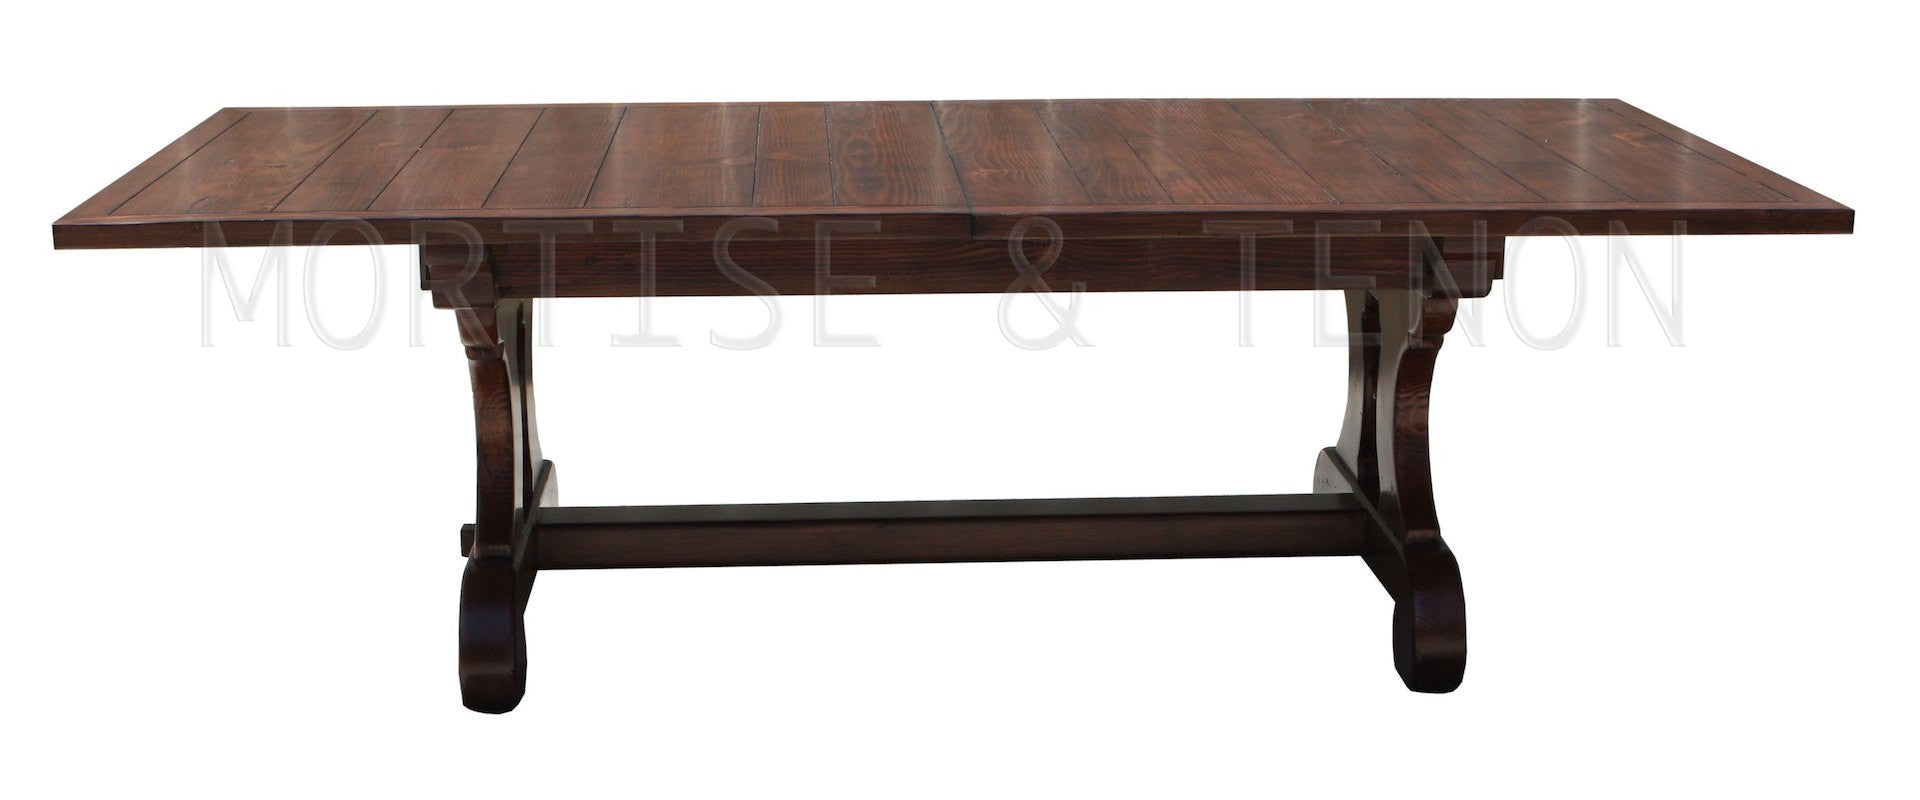 Lourdes Plank Top Trestle Dining Table in Reclaimed Wood